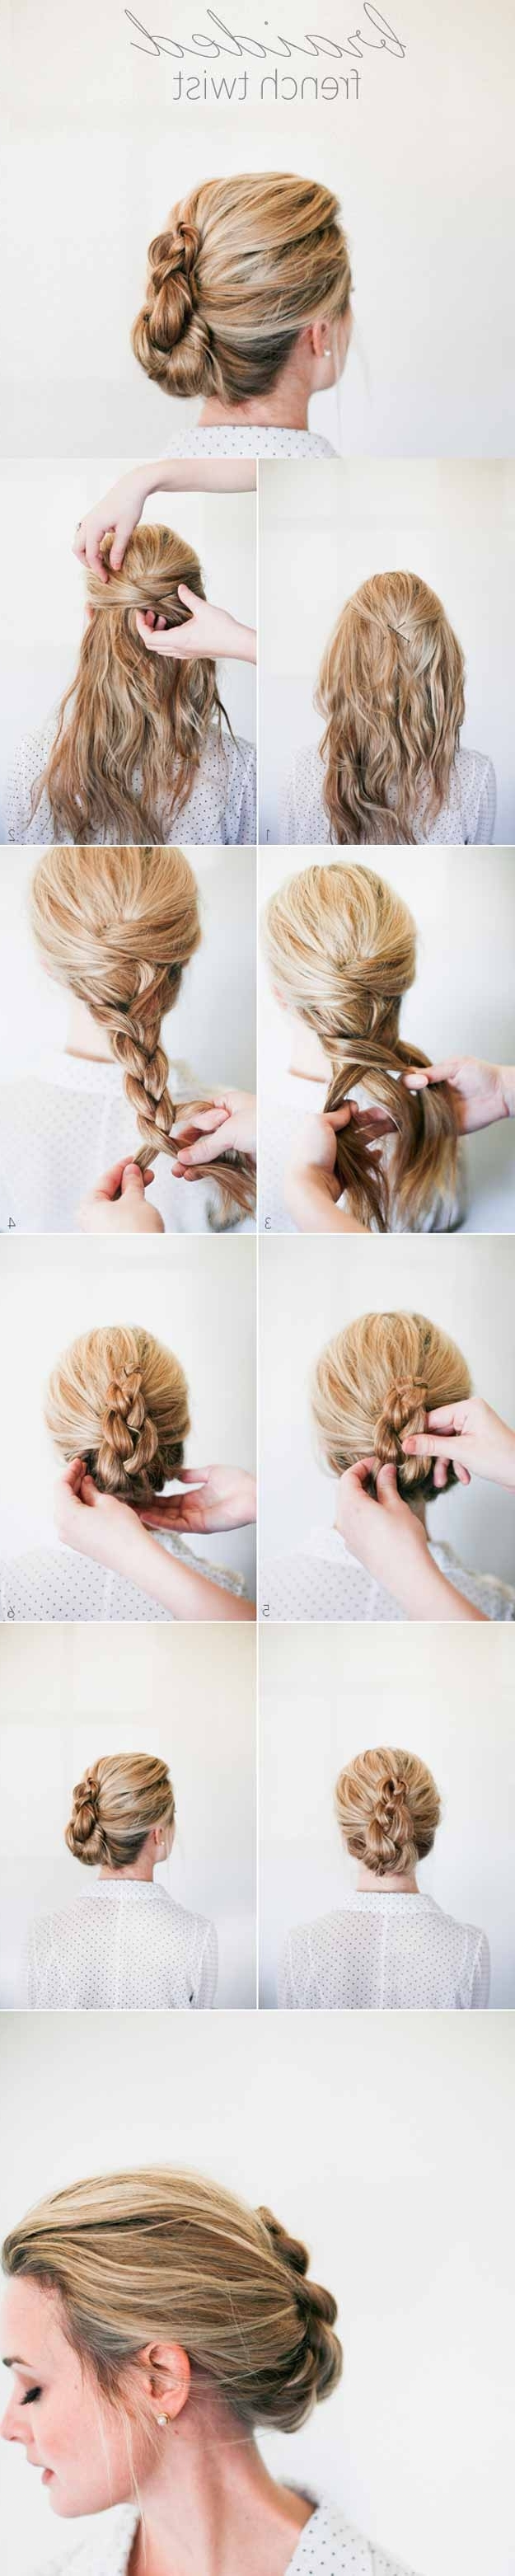 2017 Quick Braided Hairstyles For Medium Hair Throughout 35 Best 5 Minute Hairstyles – The Goddess (View 15 of 15)